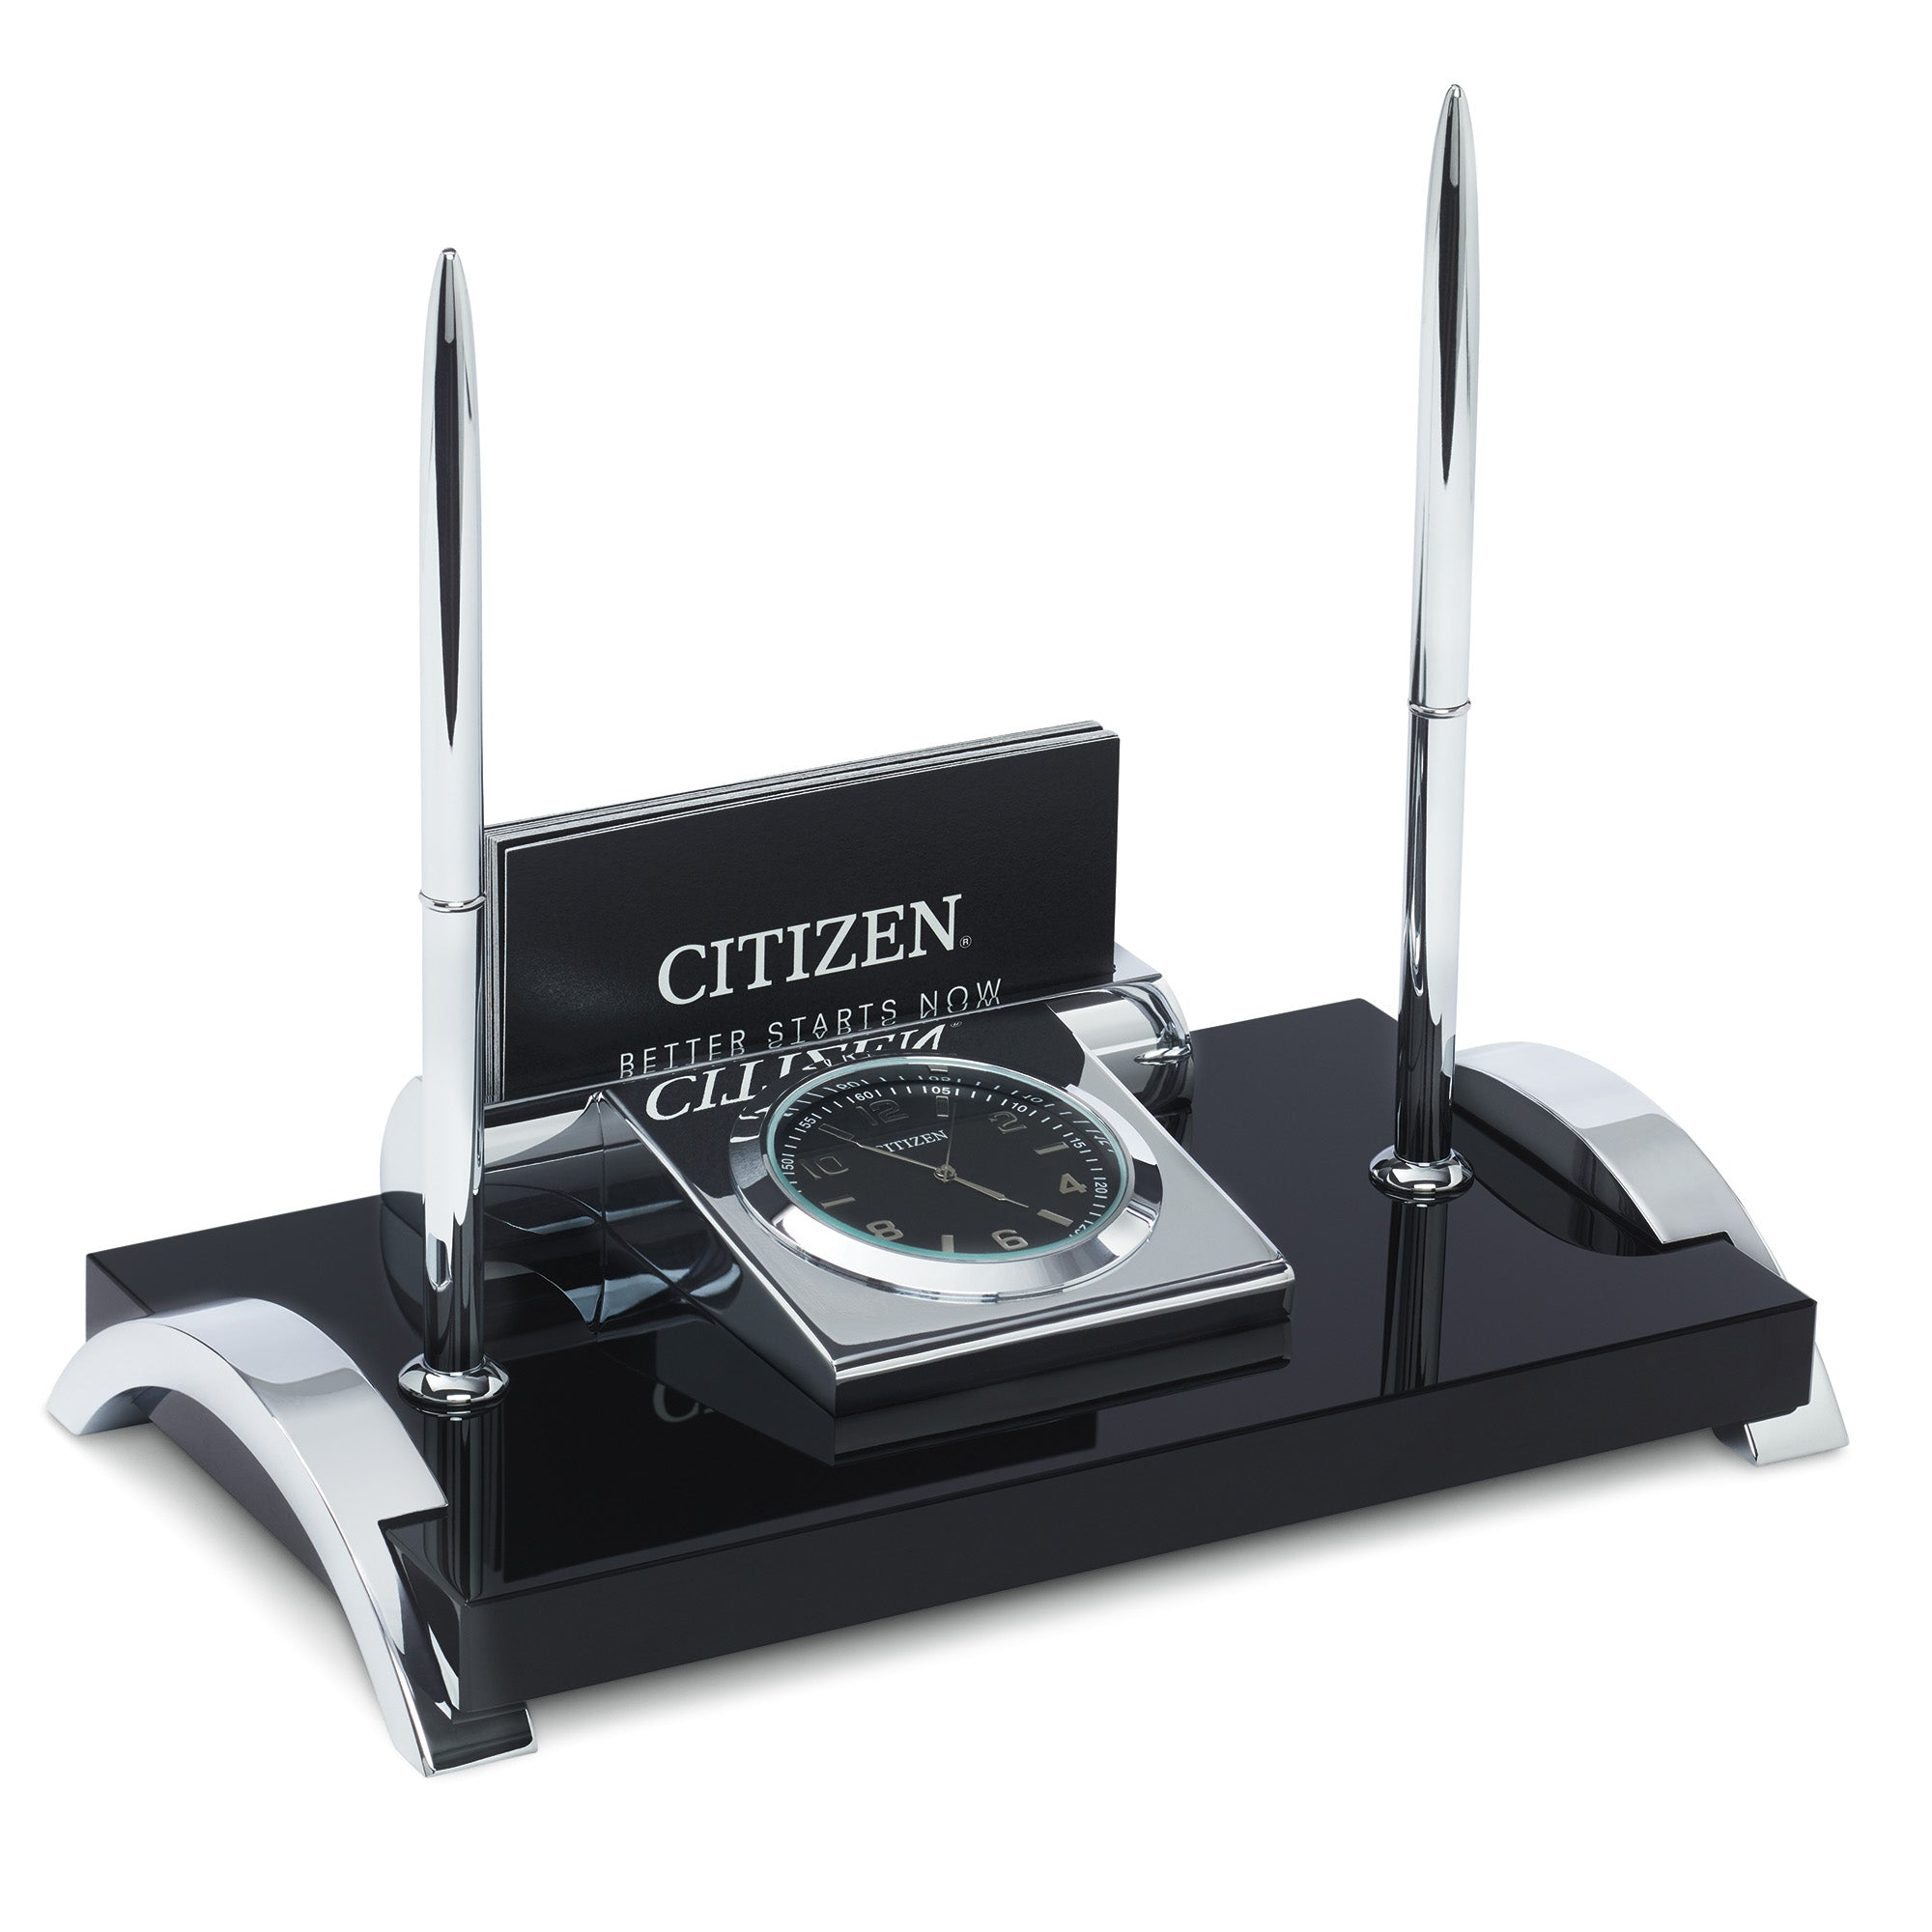 Citizen Executive Suite Crystal Base Desk Clock W/ Card Holder & 2 Pen Set CC1002